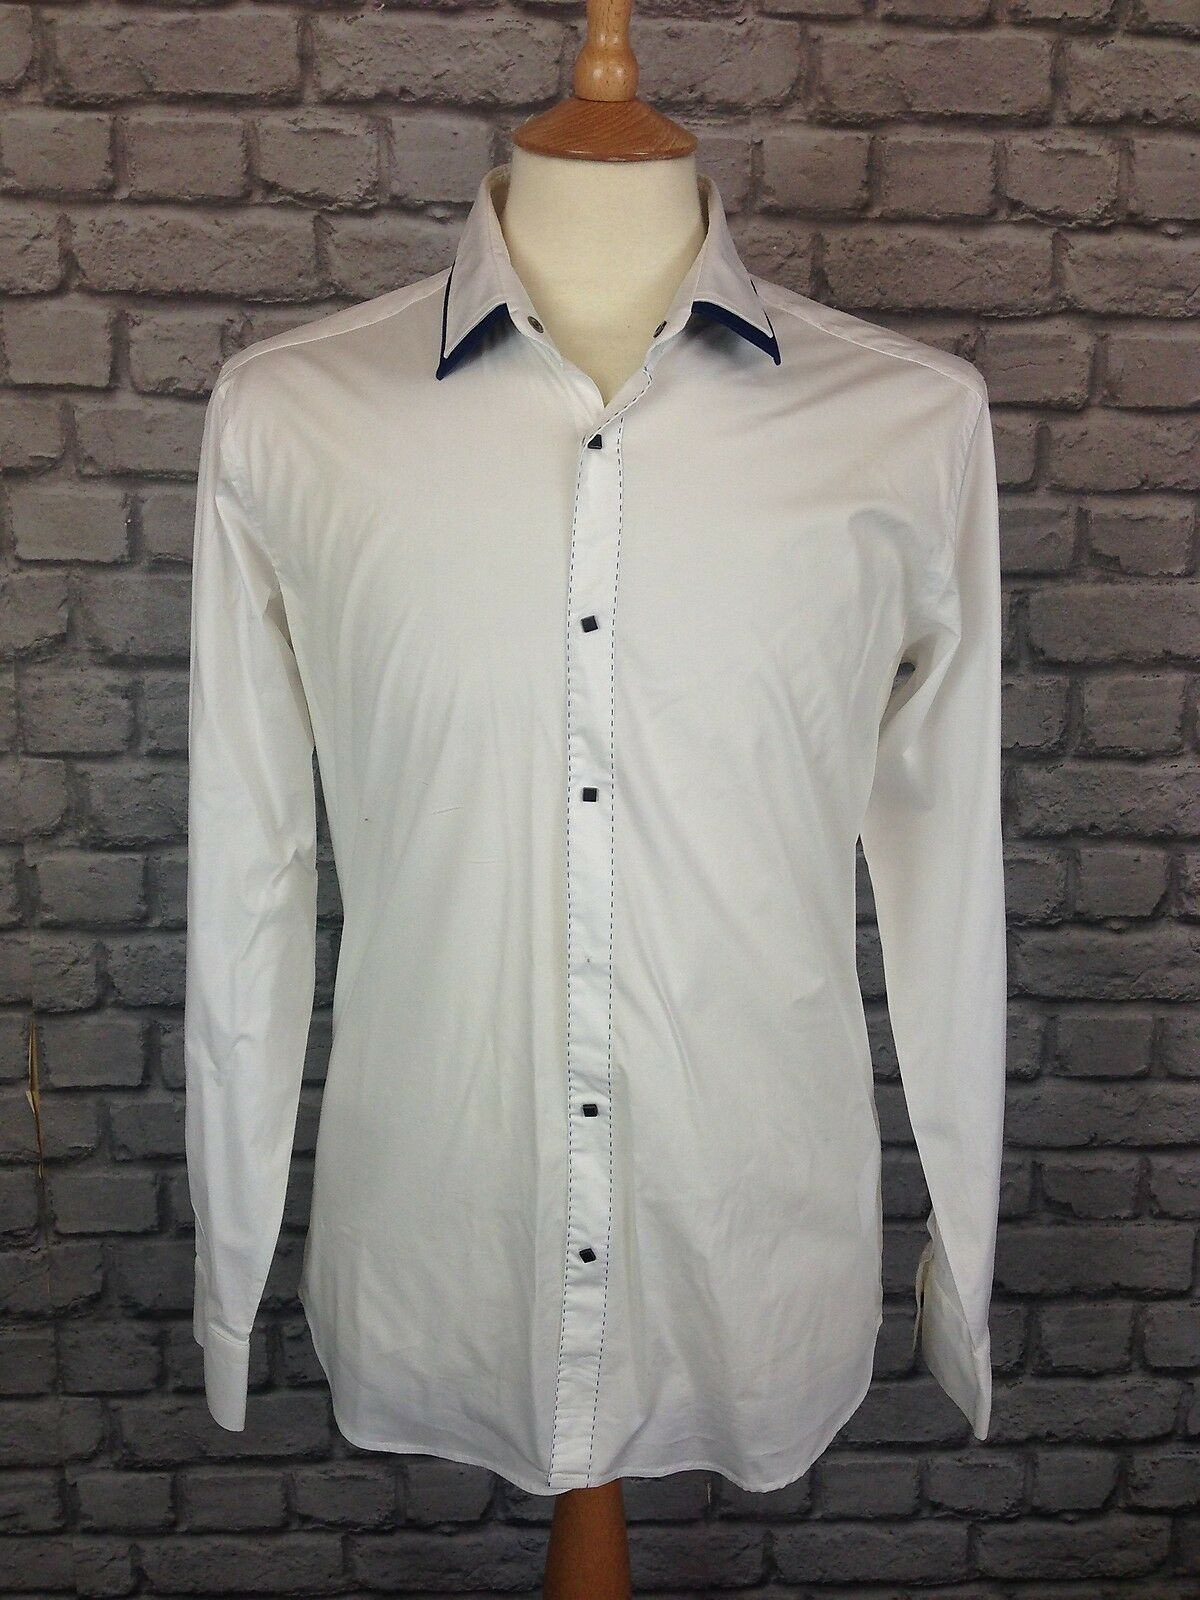 LAGERFELD MENS UK S 40   102 WHITE AND blueE DOUBLE COLLARED  SHIRT RRP